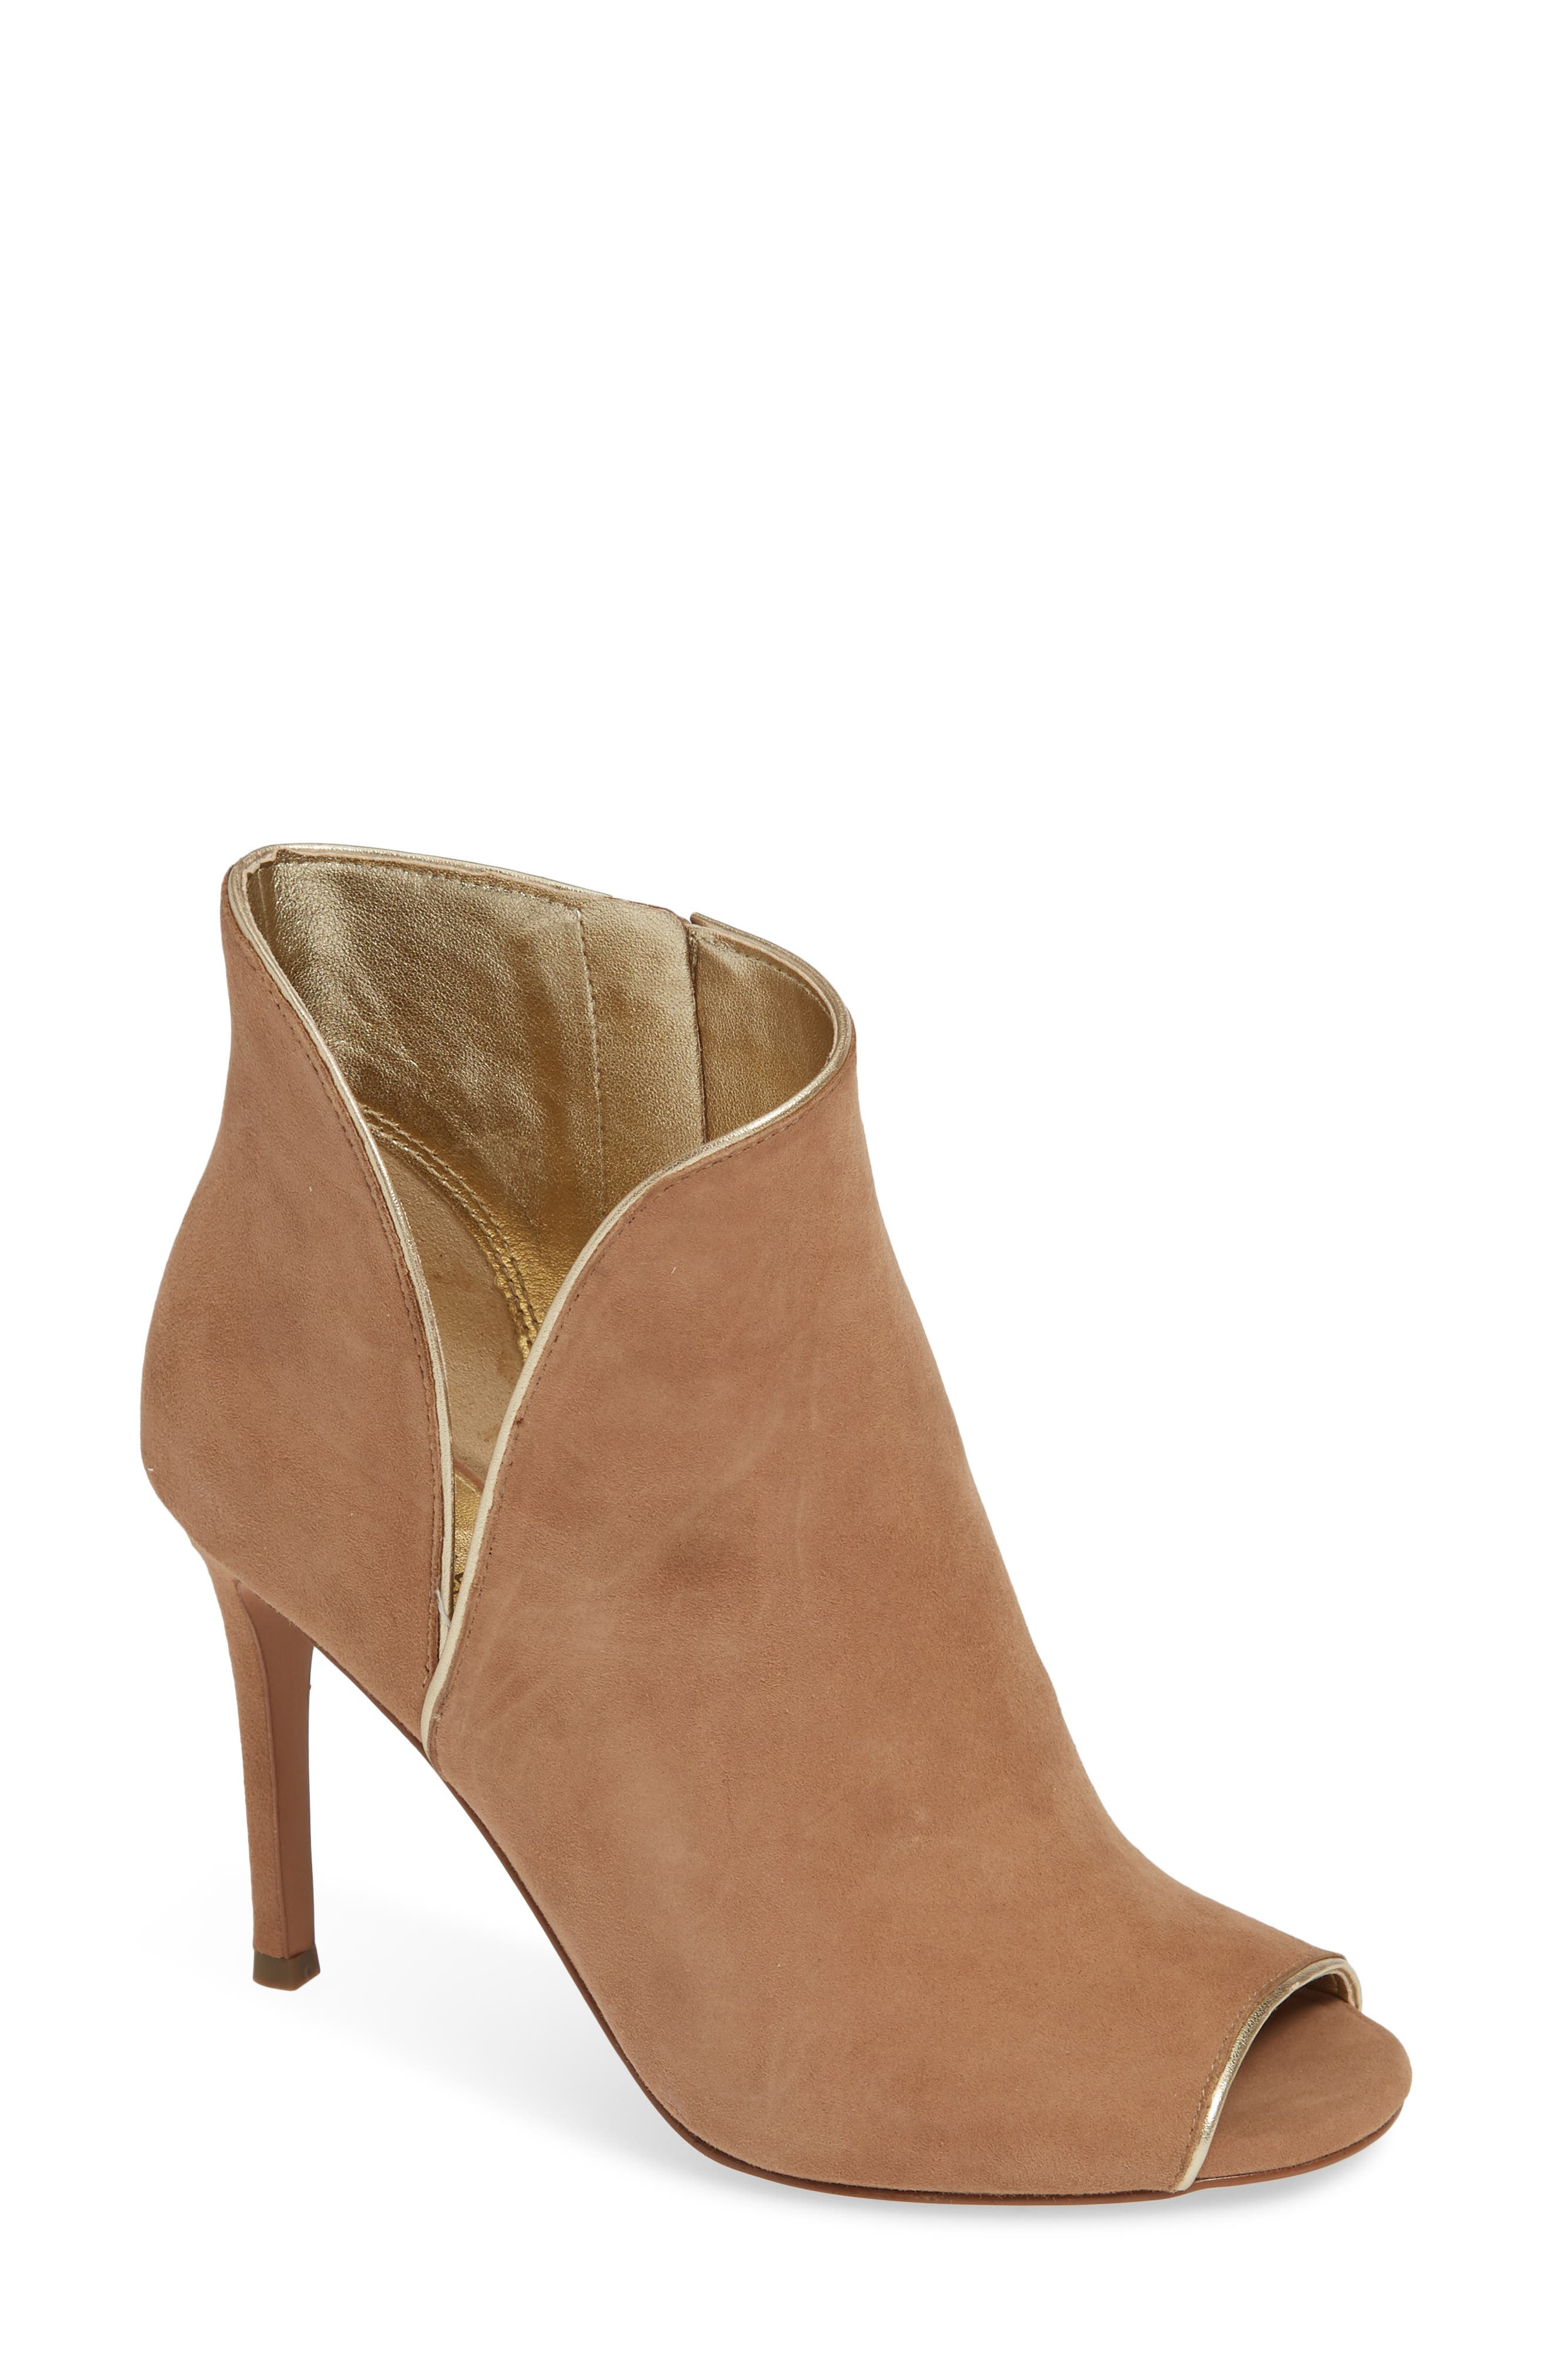 Harper Open Toe Bootie in Dark Khaki Suede